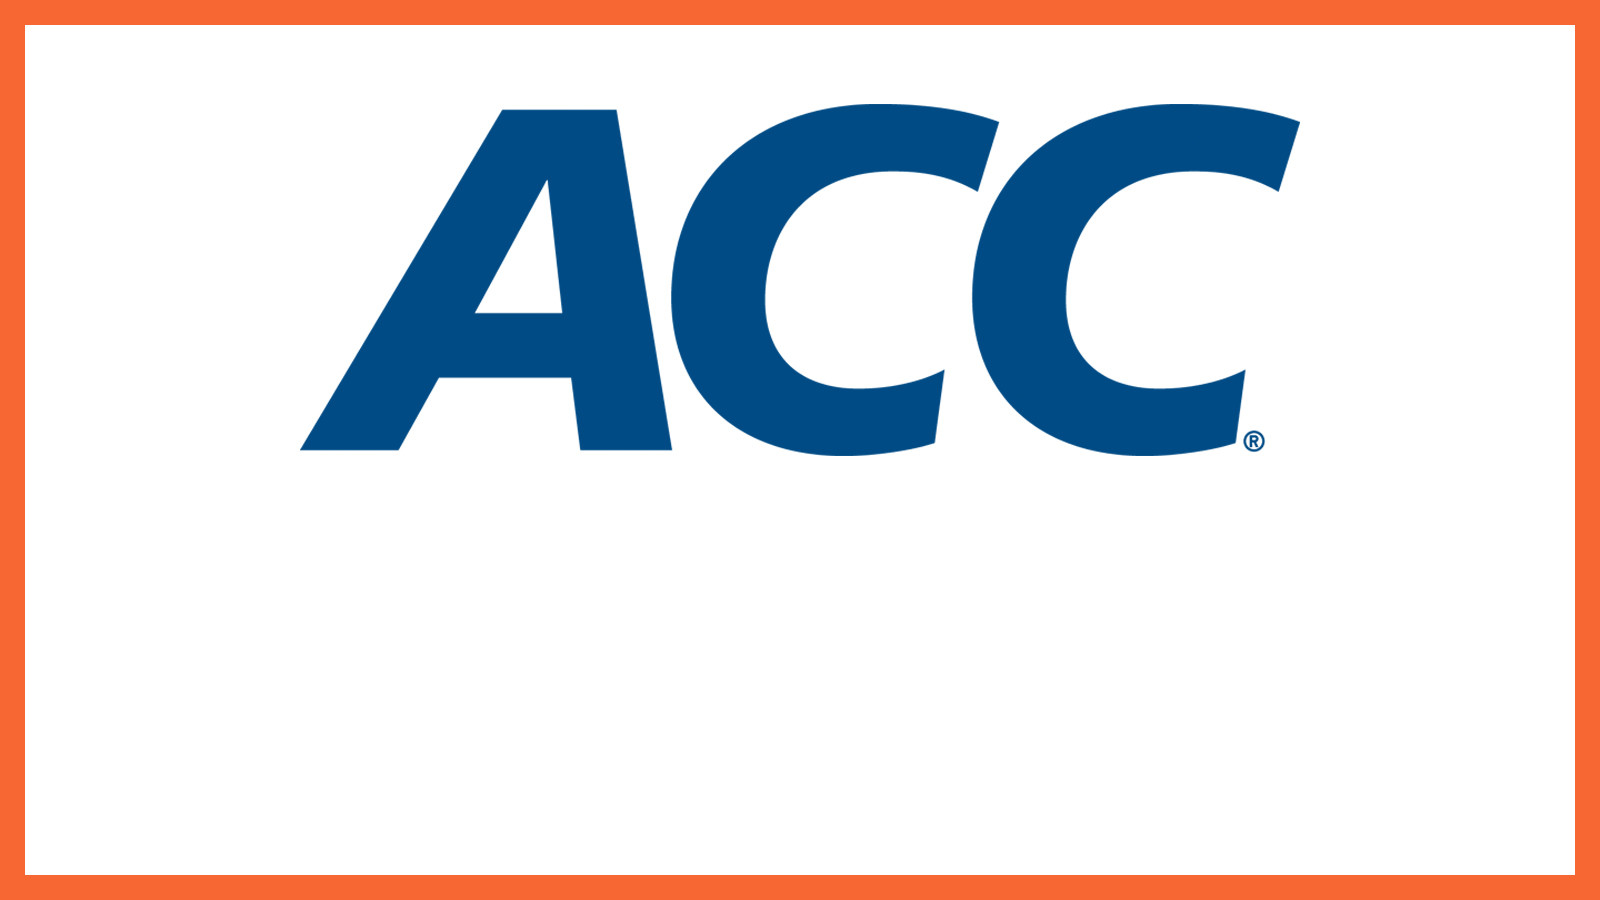 ACC Announces New Six Year Football Bowl Game Partnerships